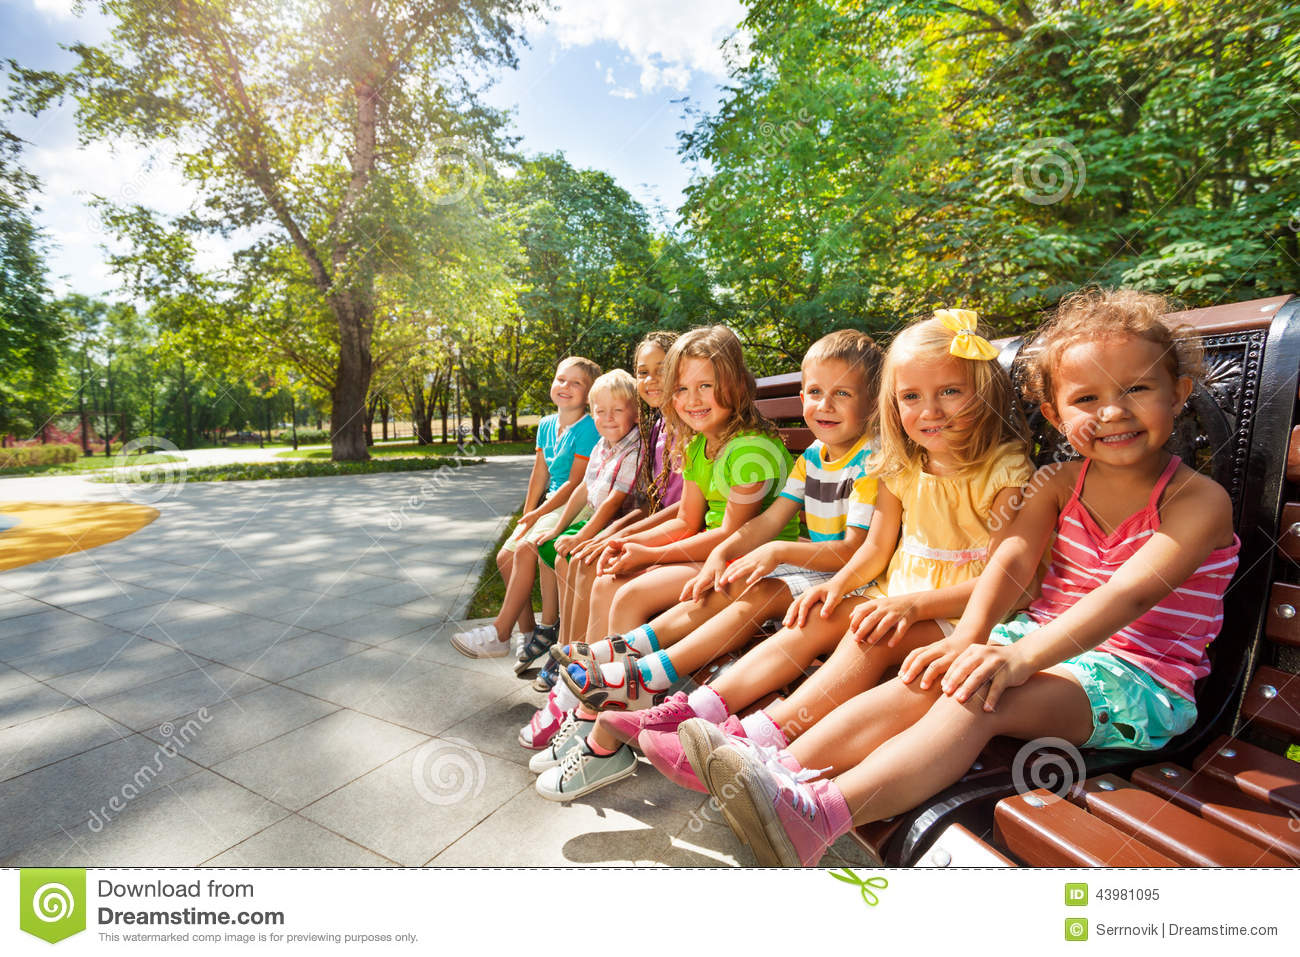 Cute Kids On The Bench In Park Toggether Stock Photo